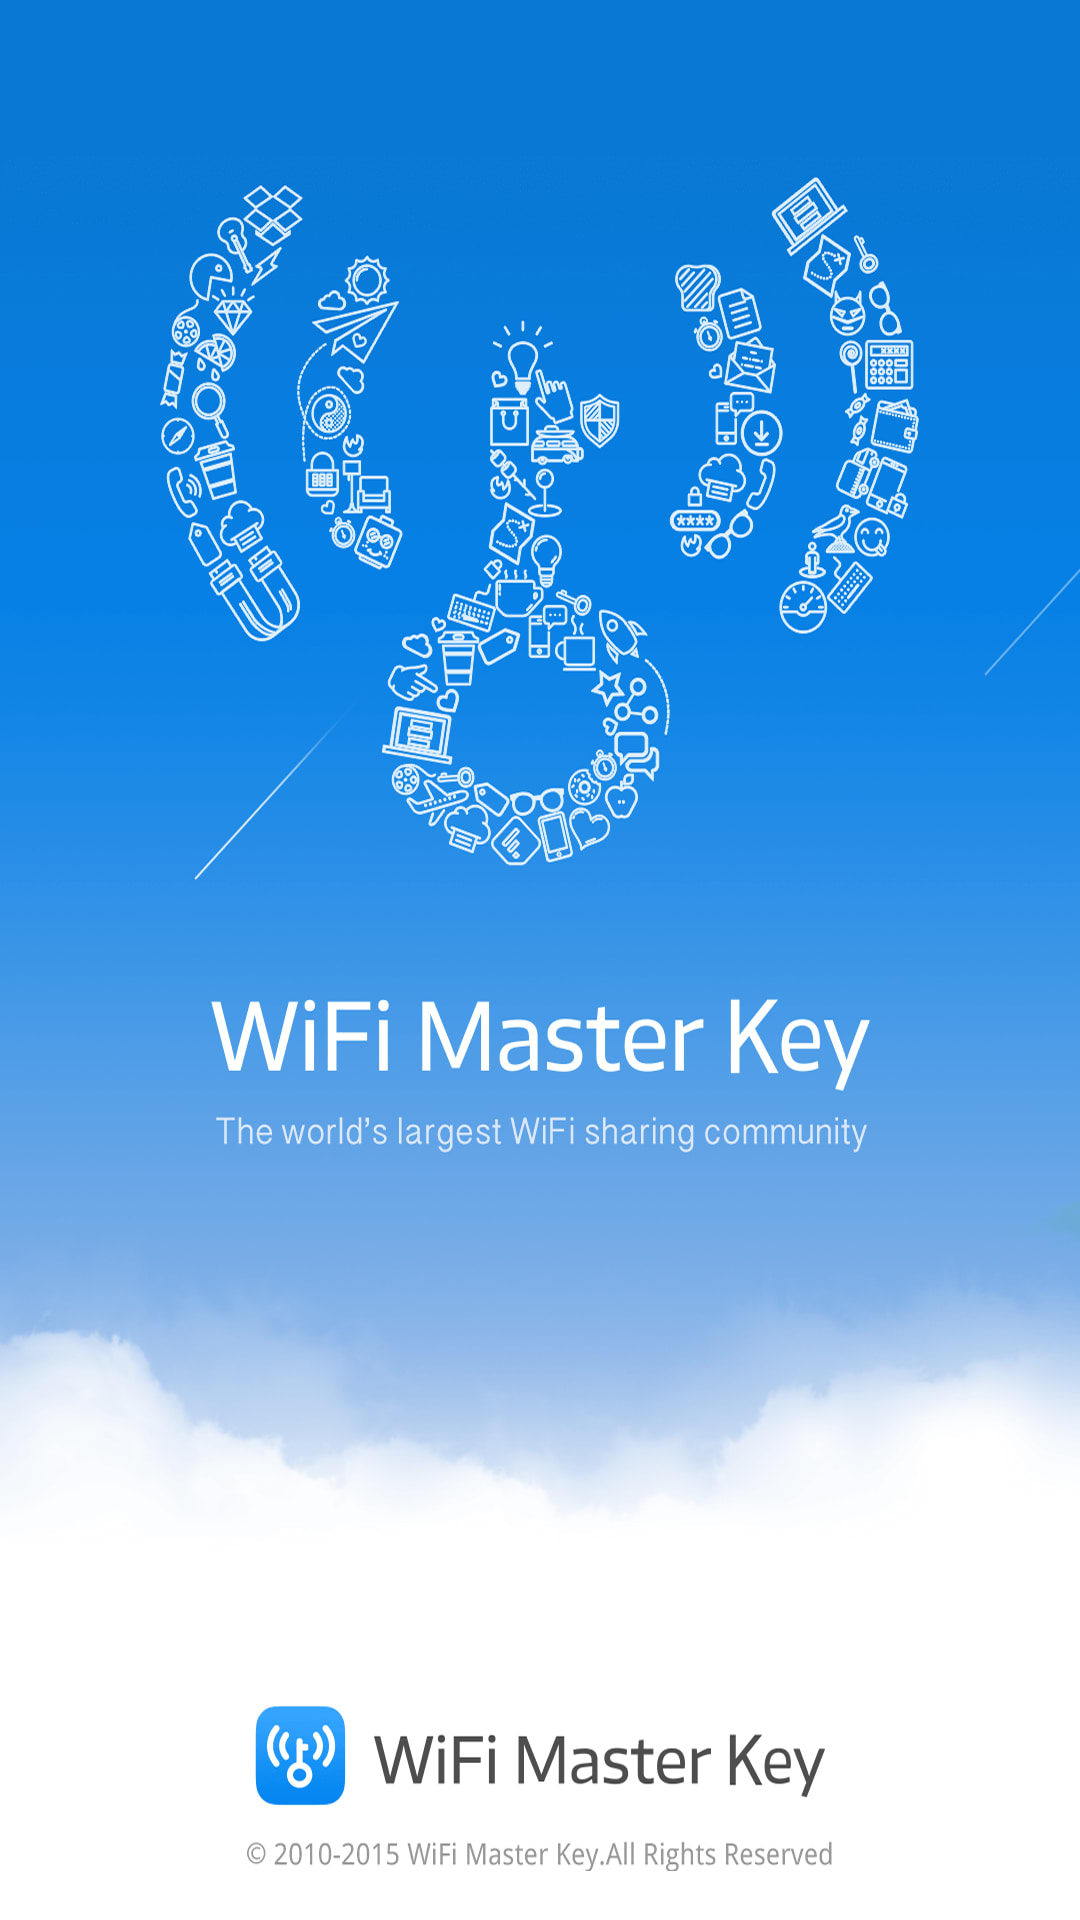 Free Download For PC Windows.The description of WiFi Map — Passwords WiFi passwords for FREE internet access all over the world! *** The most popular WiFi ...